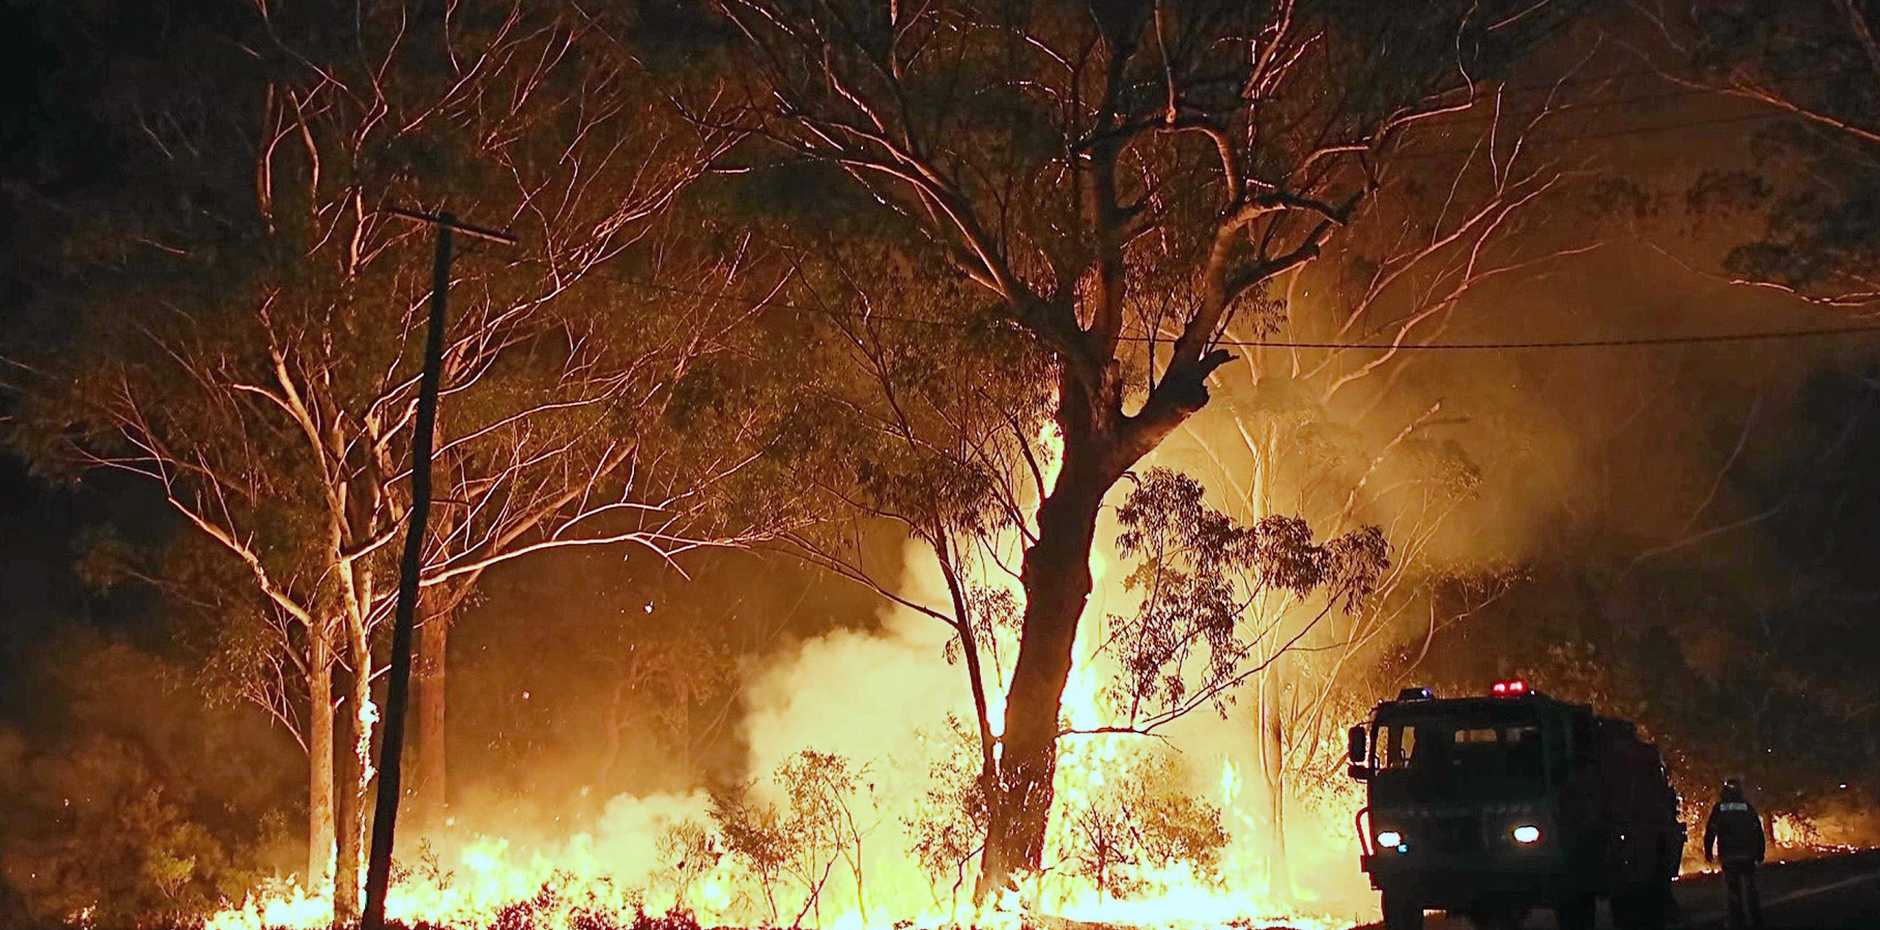 Experts believe the fires that have broken out over the last few days are only just a glimpse of what's to come.